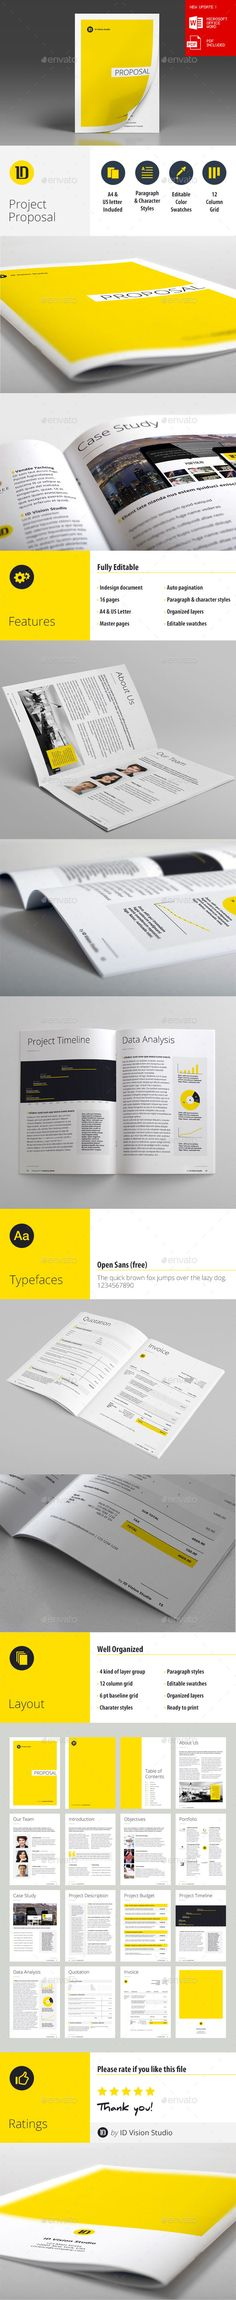 Creative Project Proposal Template Design Download Http